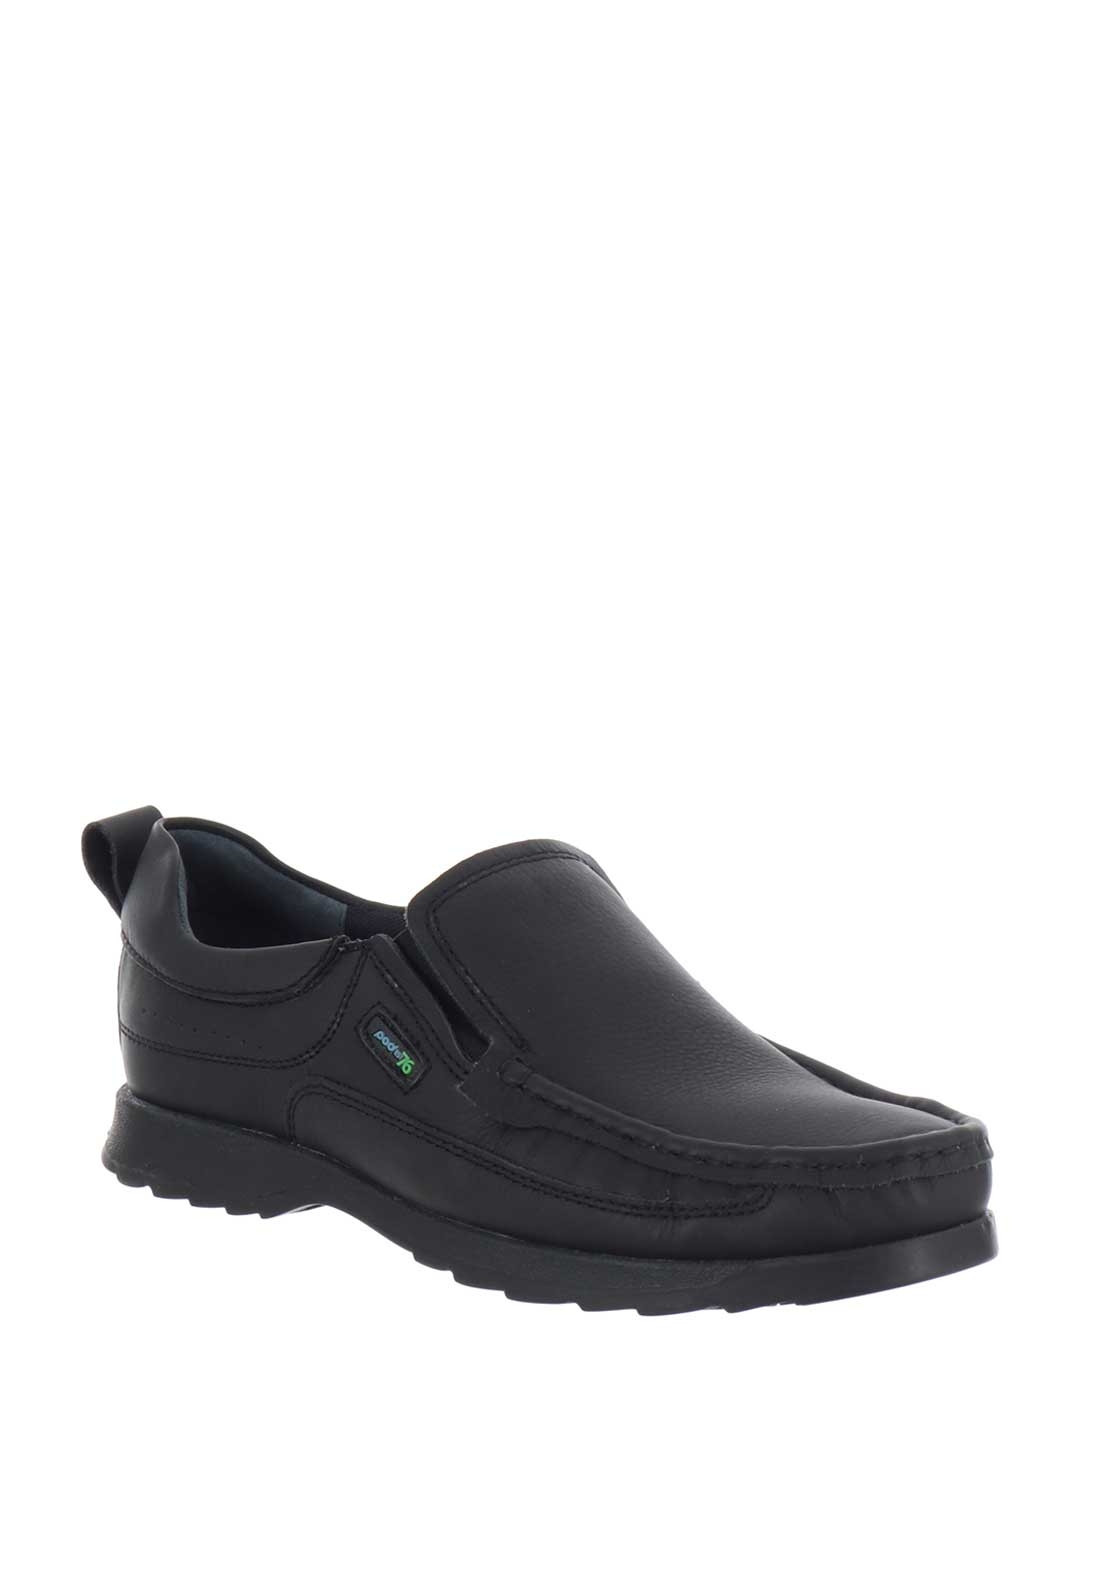 Paul O' Donnell by Pod Richie Leather Shoe, Black